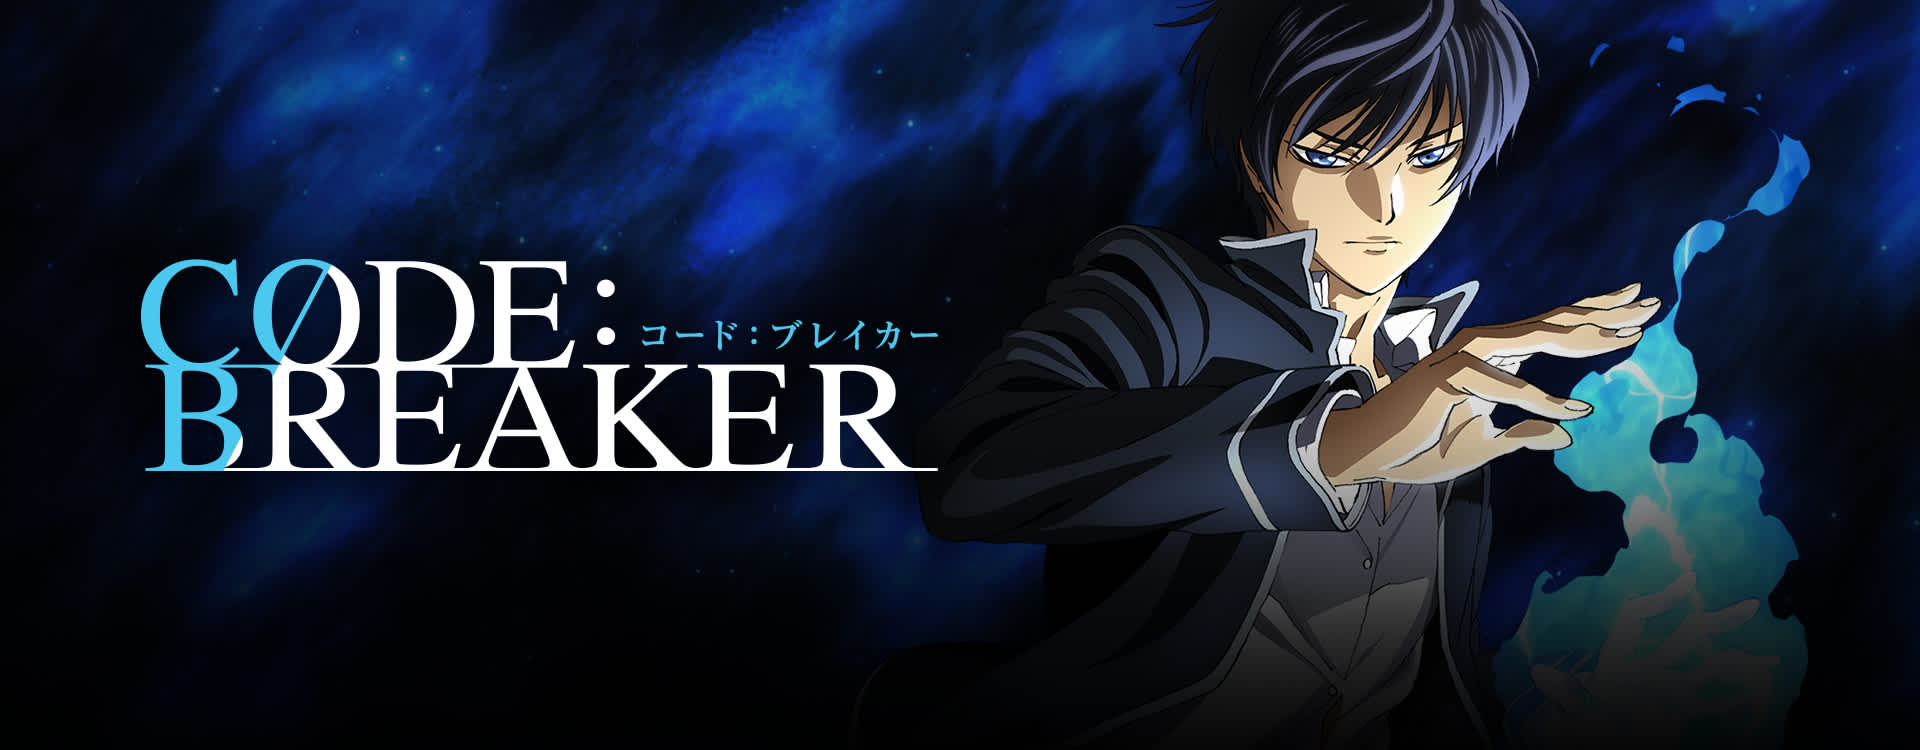 watch code breaker online english dubbed